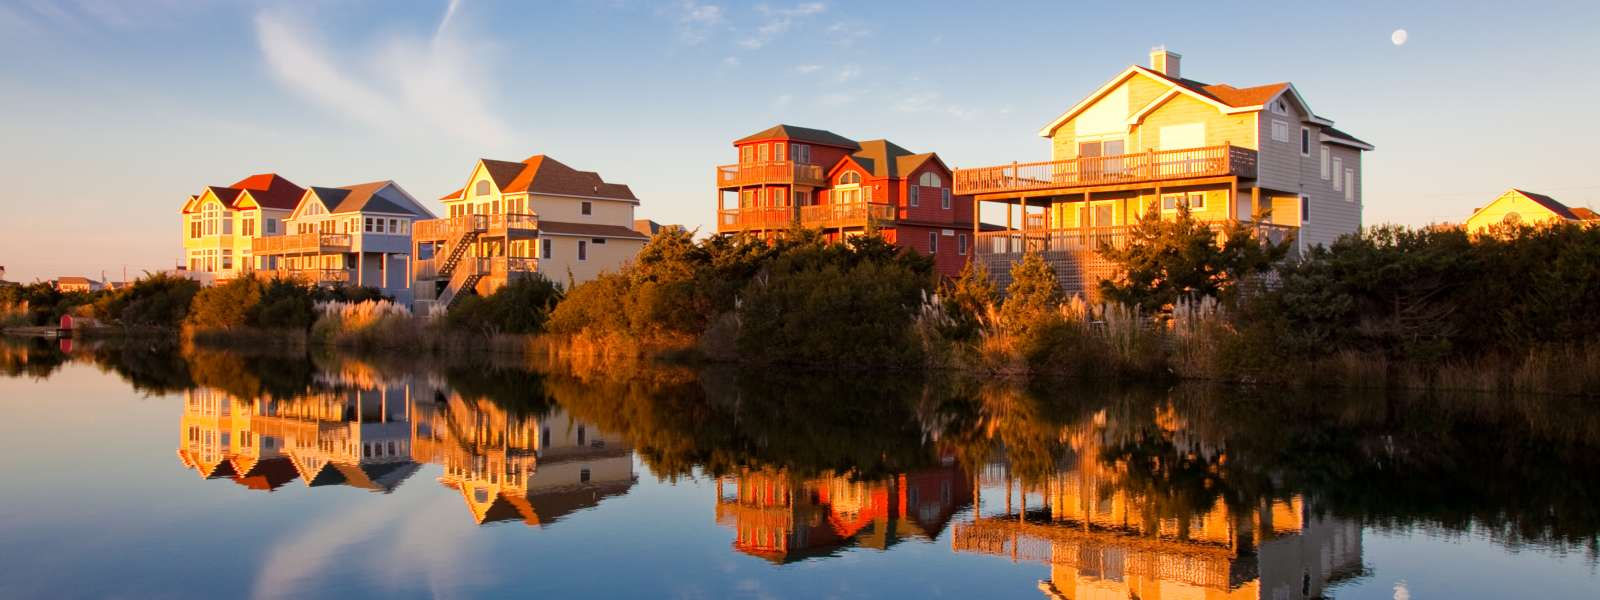 shores southern rentals cottages realty vacation home outer banks